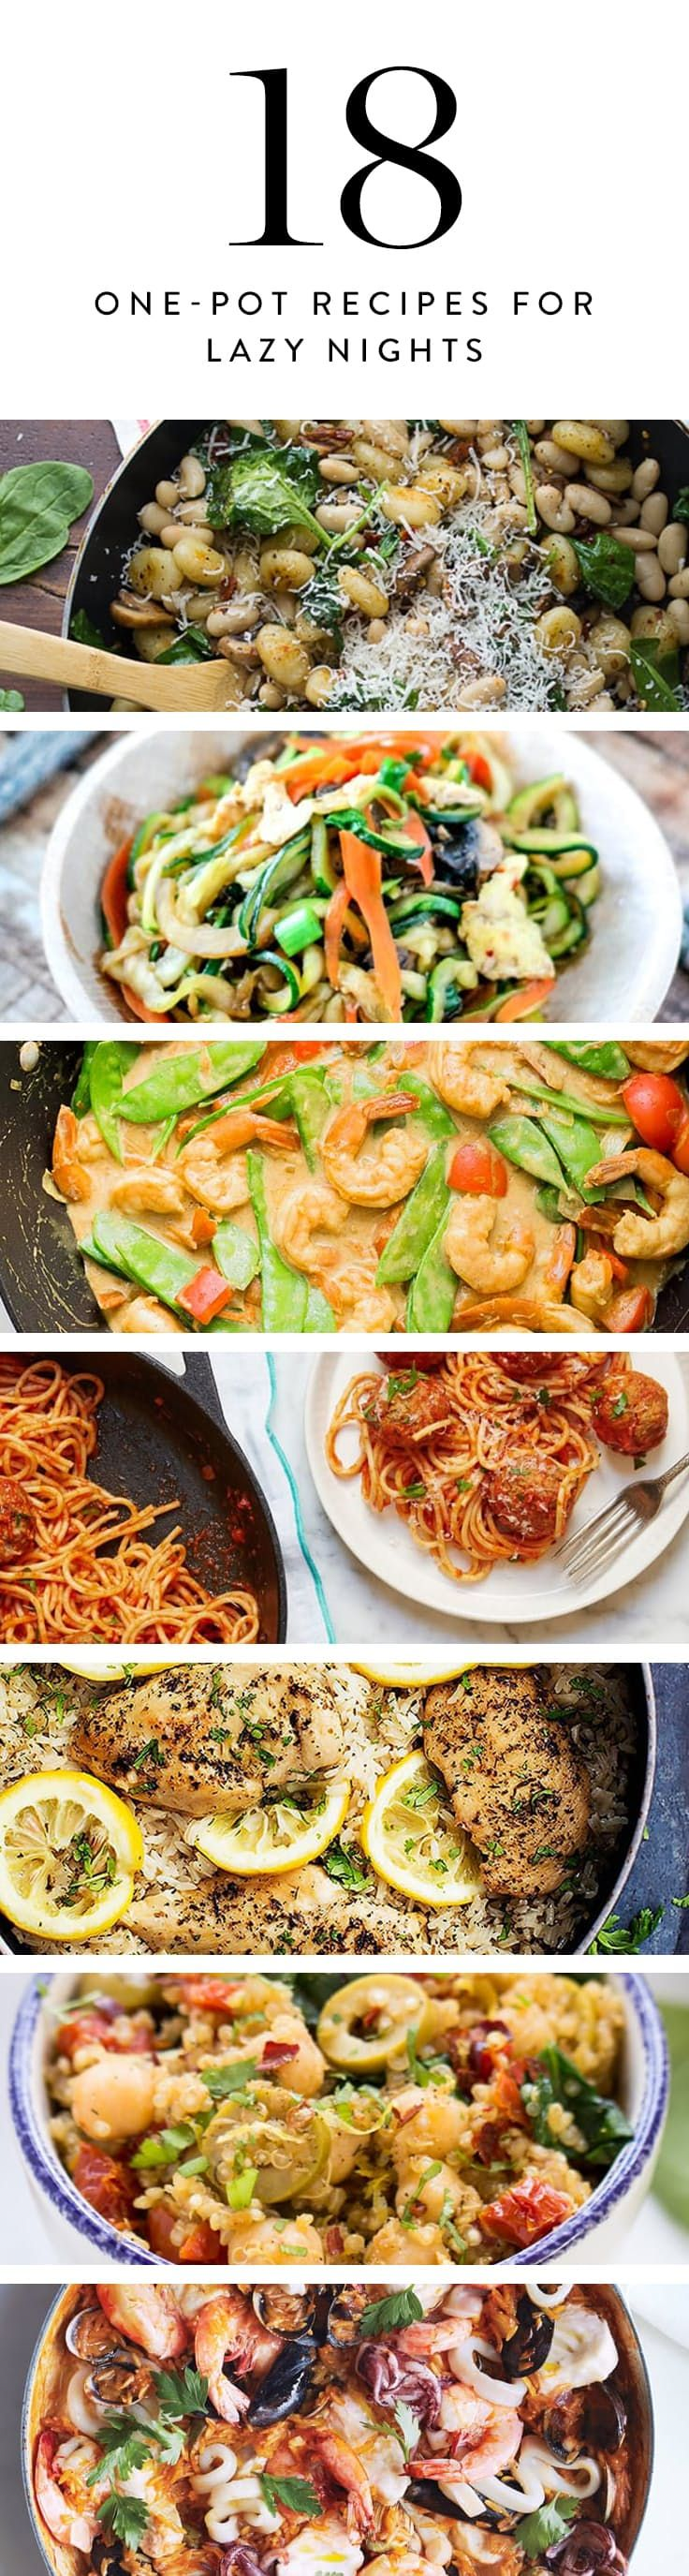 18 One-Pot Recipes for Lazy Nights via @PureWow